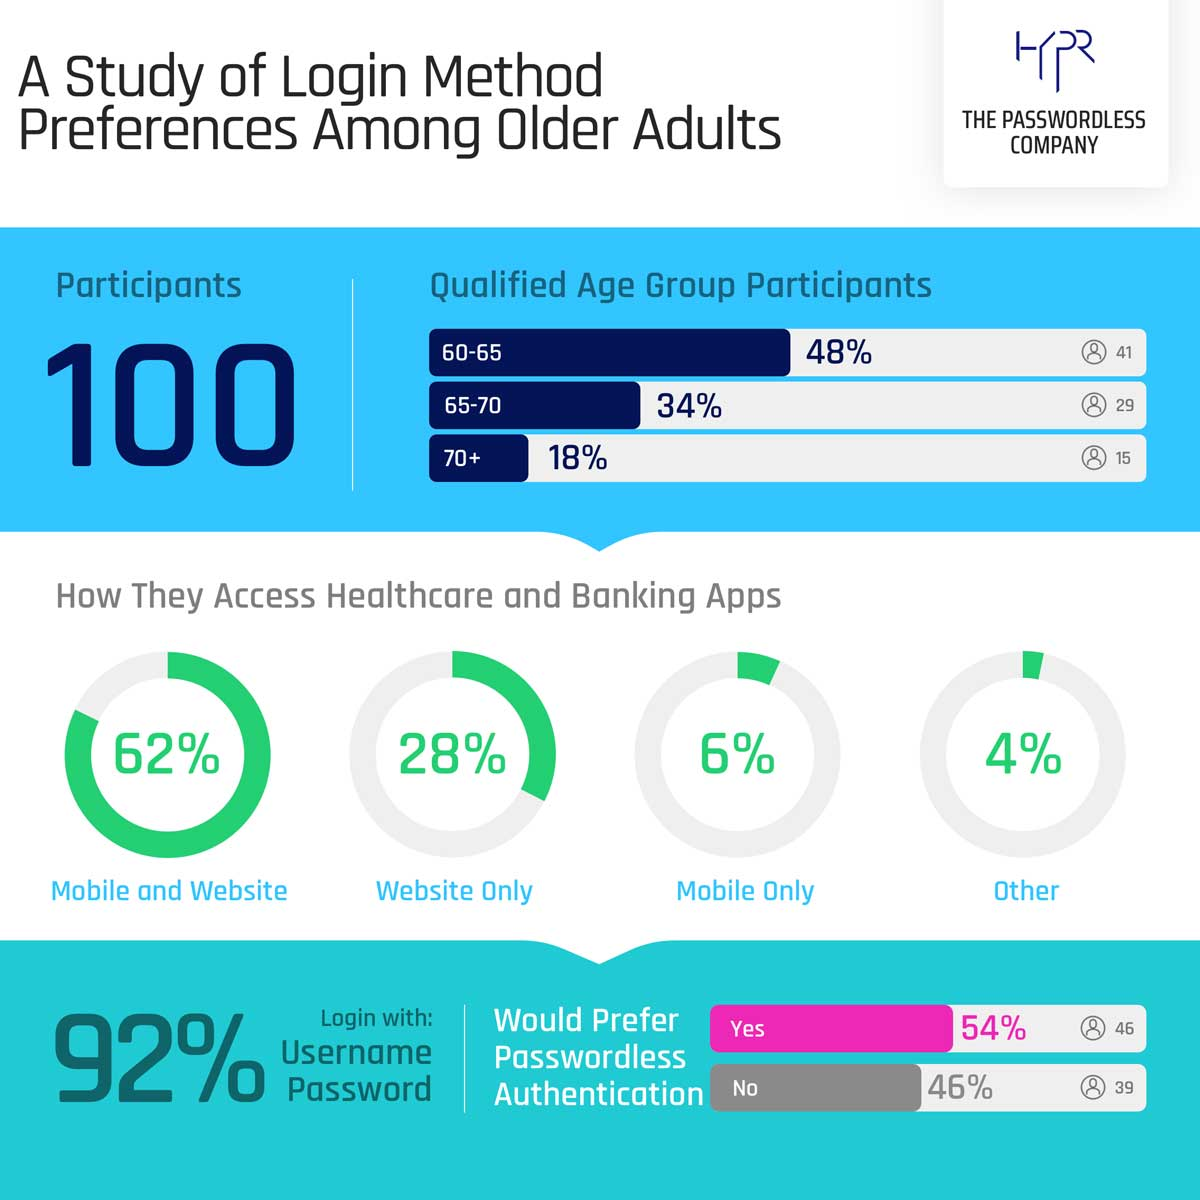 A Study of Login Method Preferences Among Older Adults